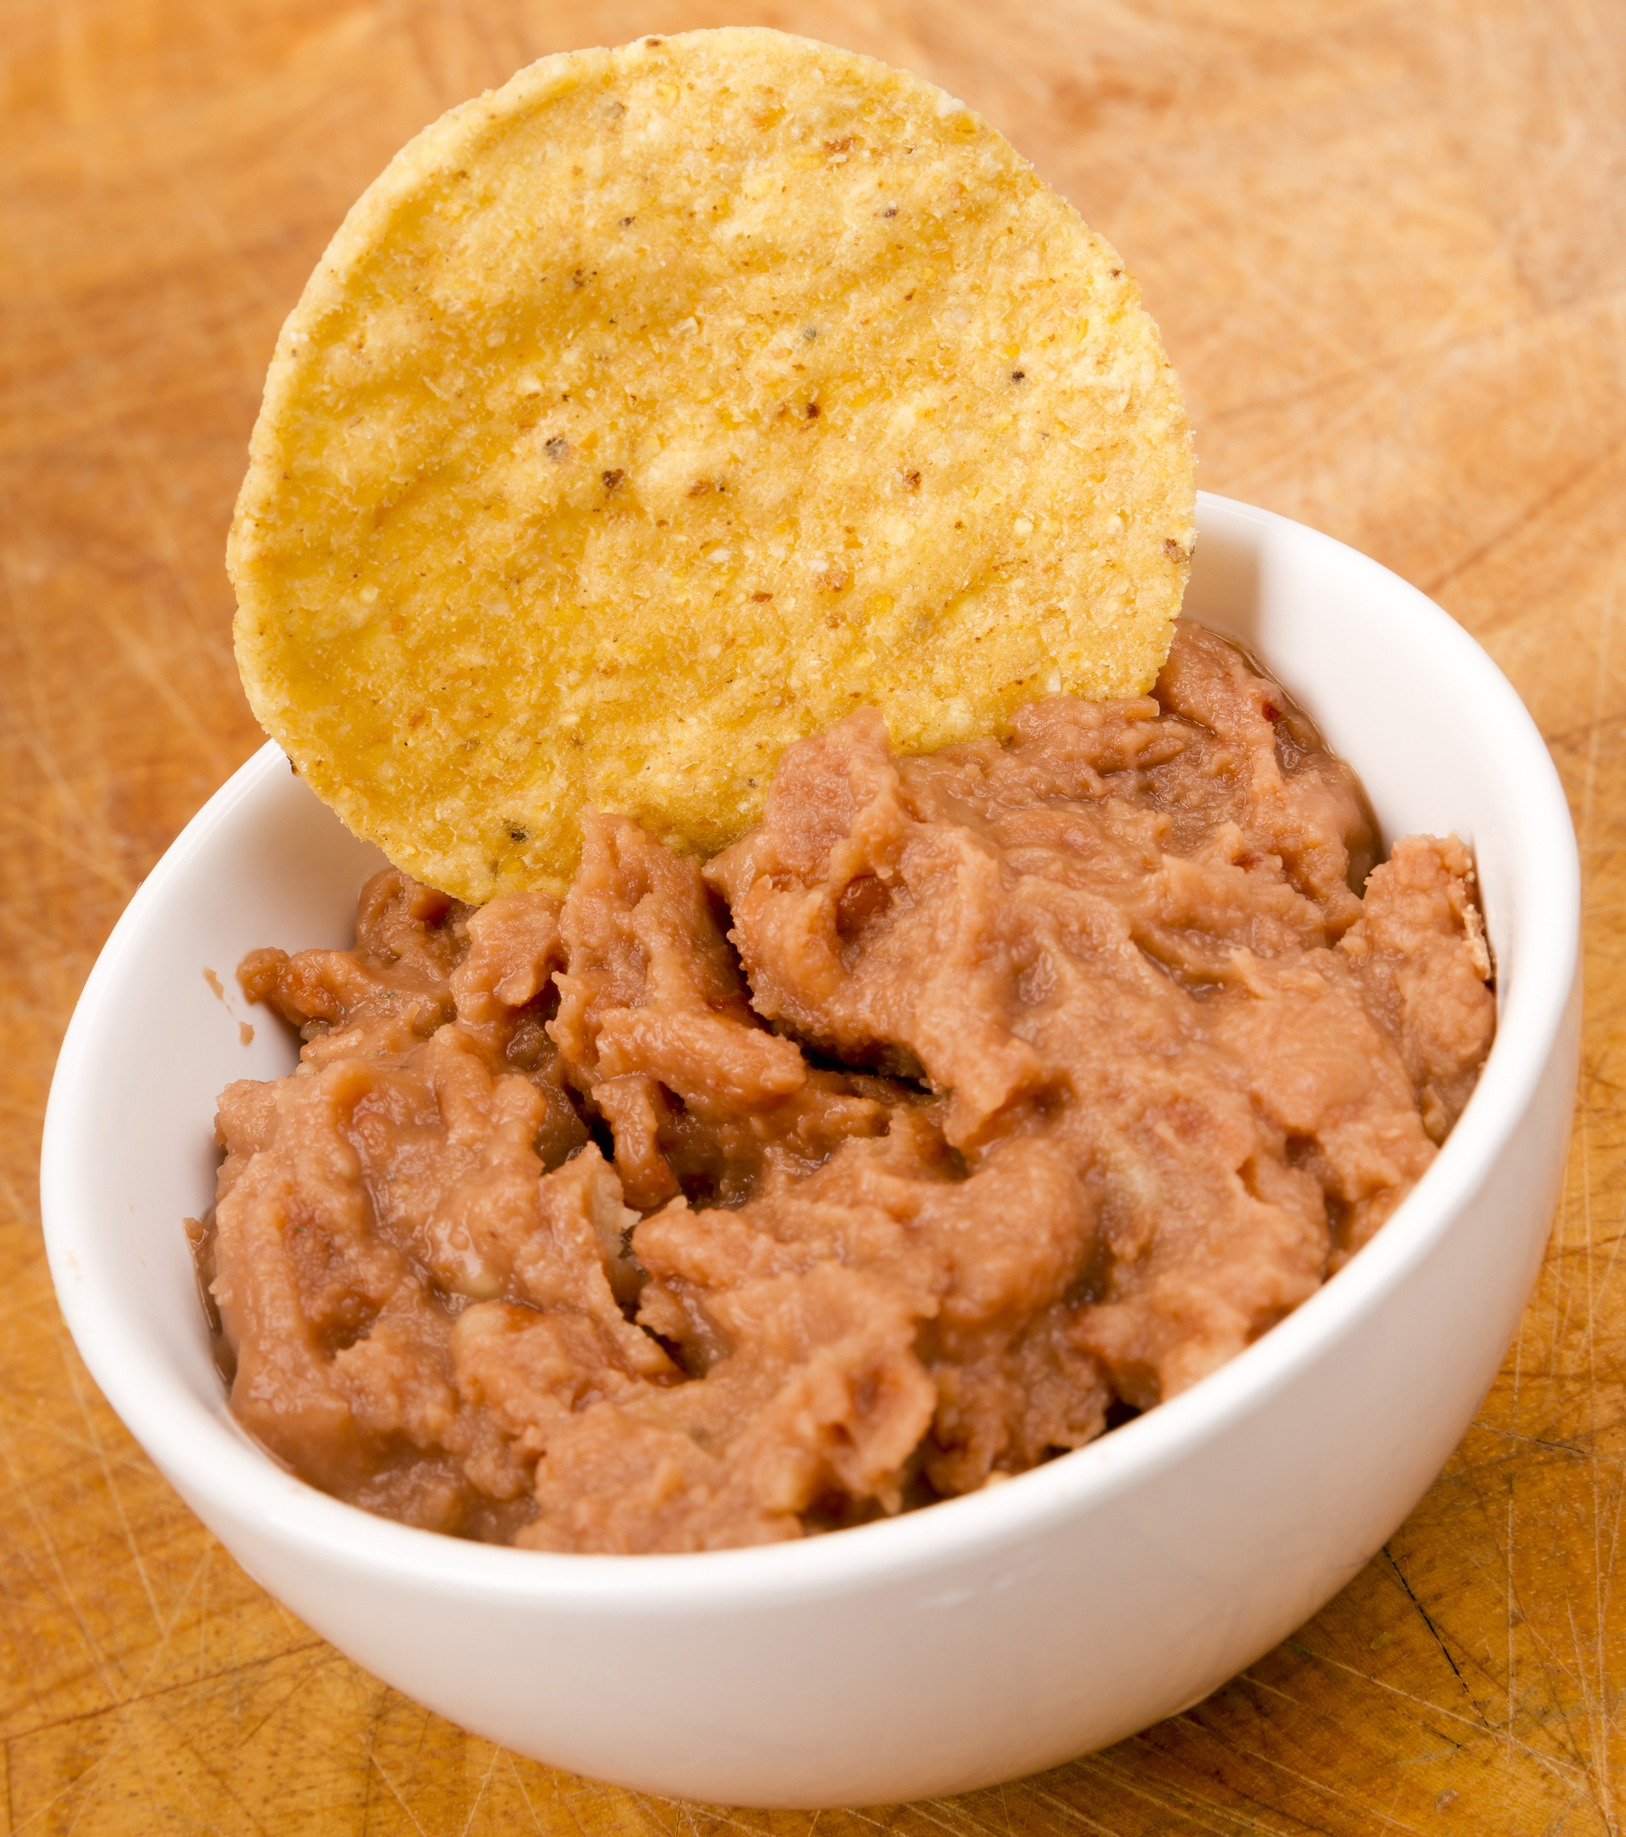 How To Make Refried Beans: Quick And Easy Homemade Refried Beans